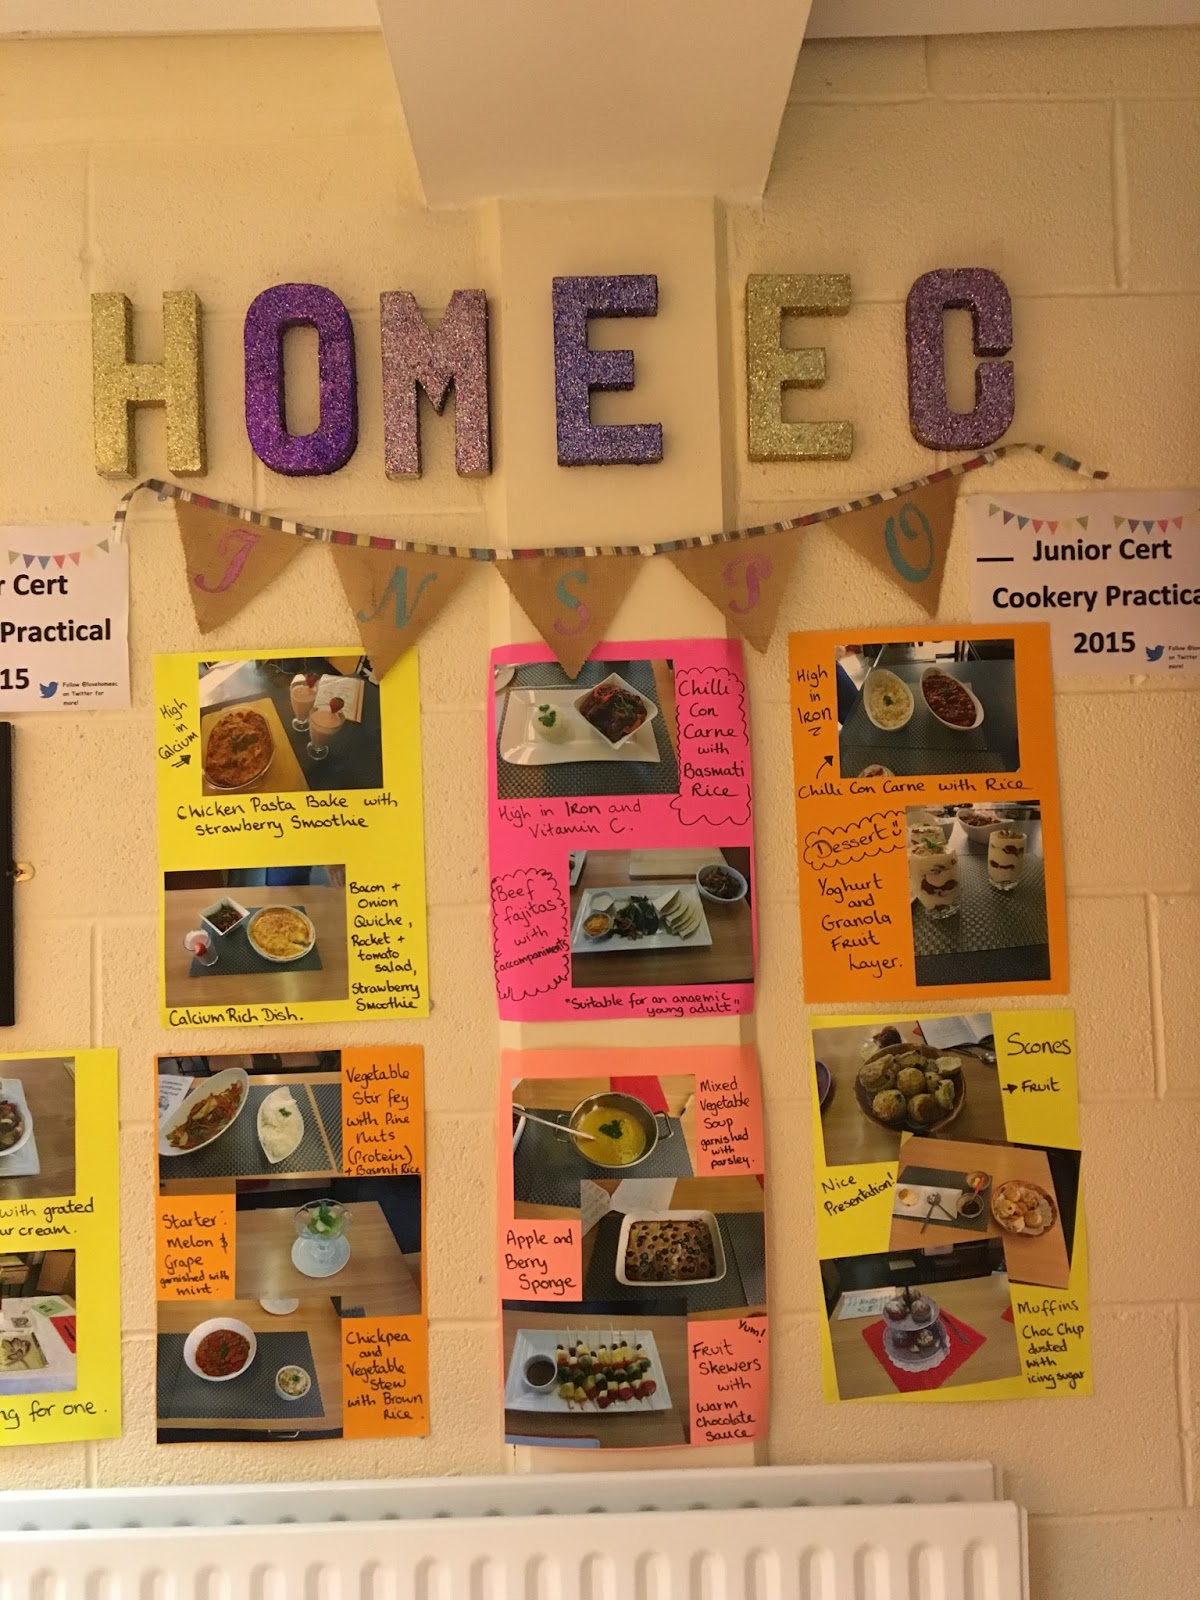 lovehomeec now the hard part keeping it updated